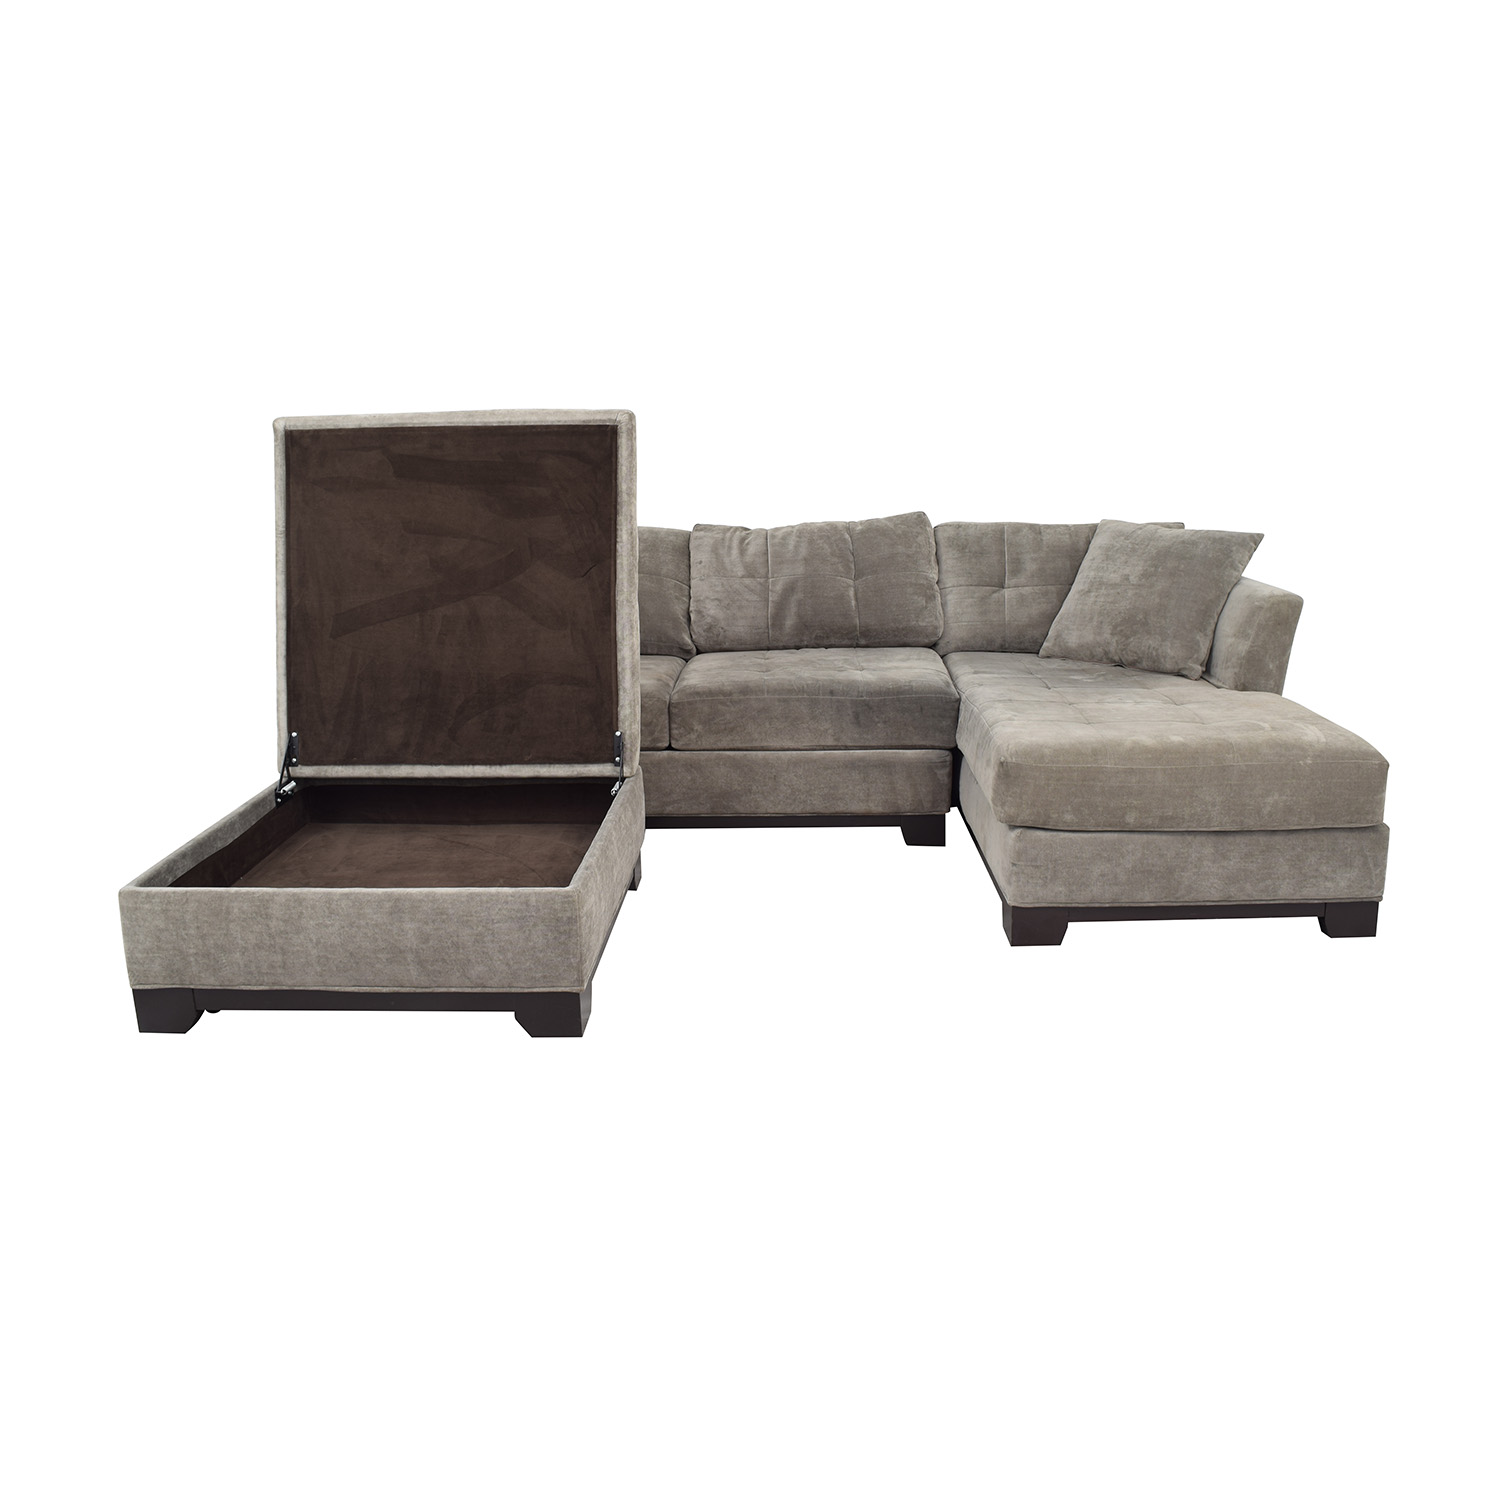 Macy's Macy's Furniture Chaise Couch with Ottoman Sectionals